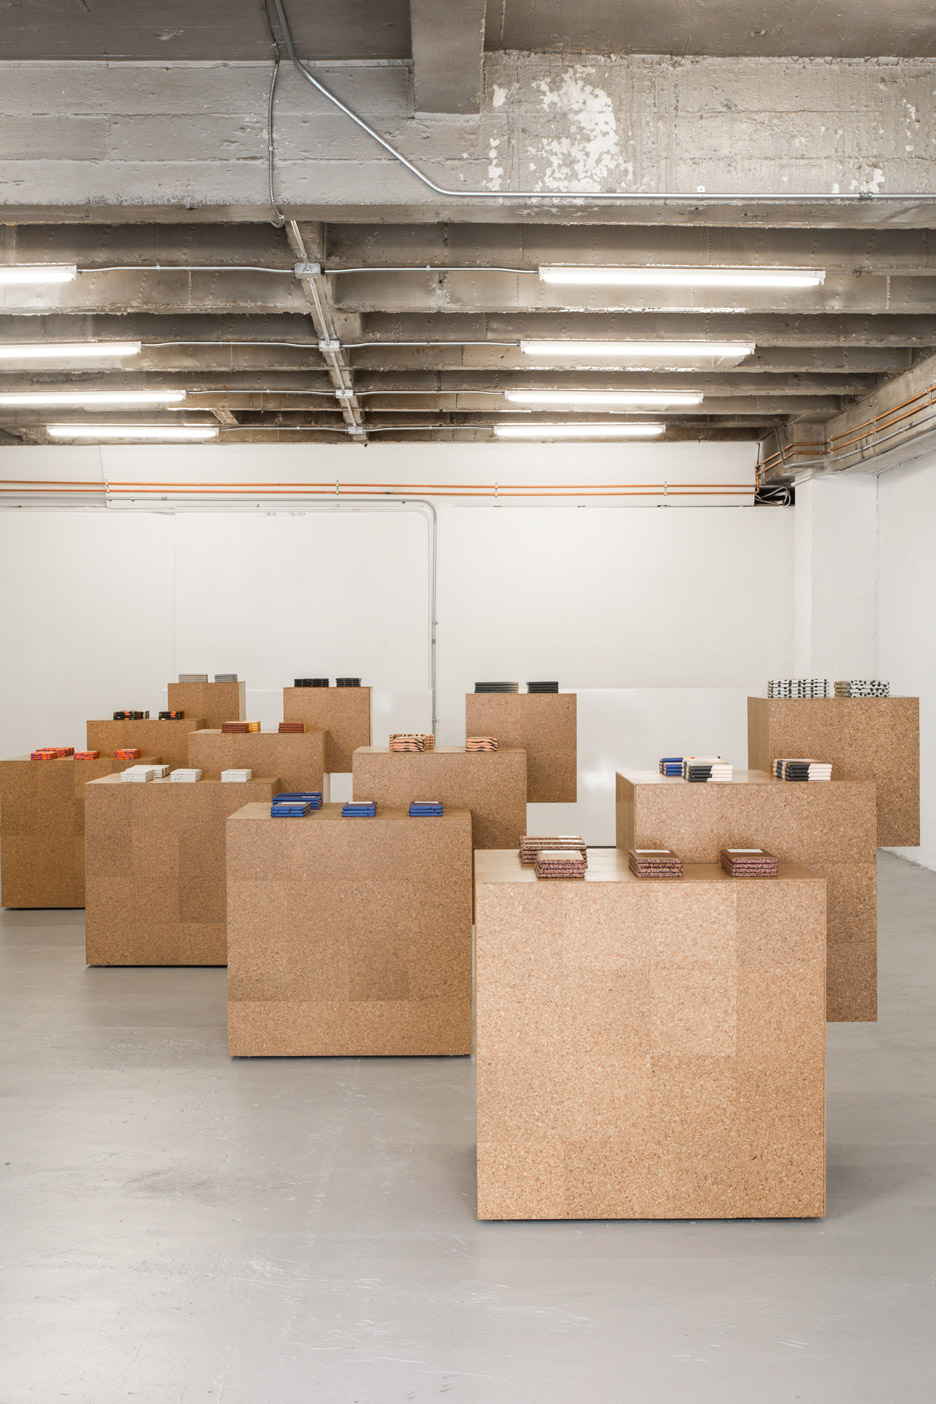 Mast-Chocolate-Pop-Up_Sight-Unseen-Exhibition_LA-Design_Austere_dezeen_936_1